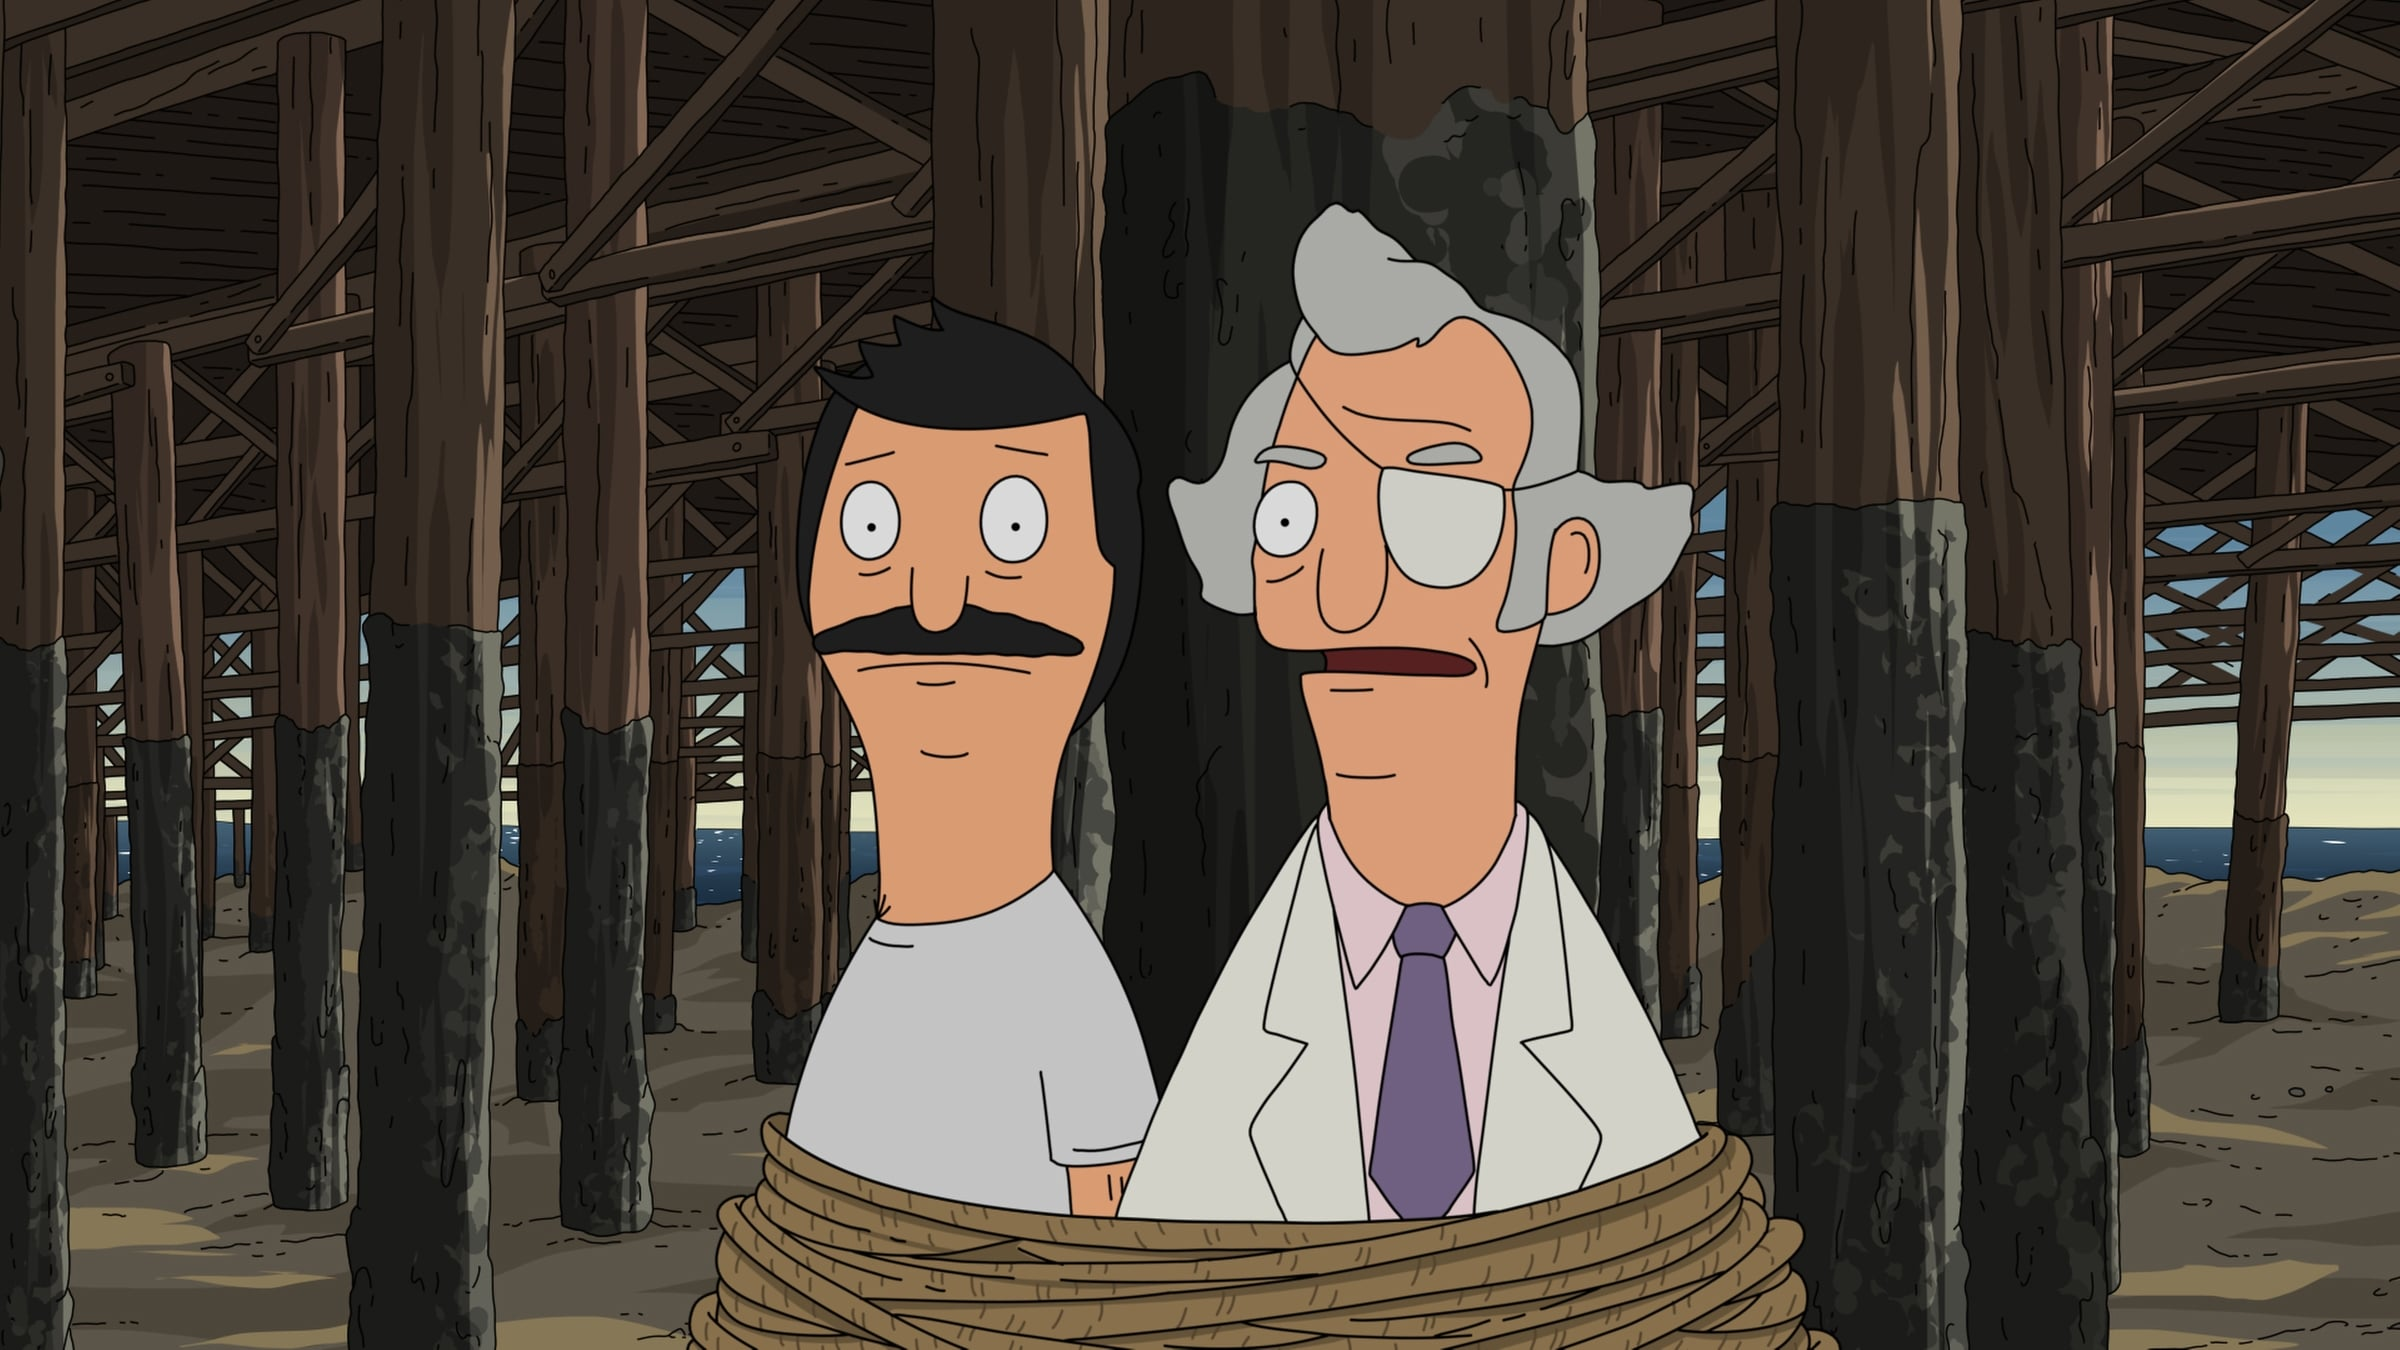 Bob's Burgers - Season 4 Episode 22 : World Wharf II: The Wharfening (or How Bob Saves/Destroys the Town - Part II)